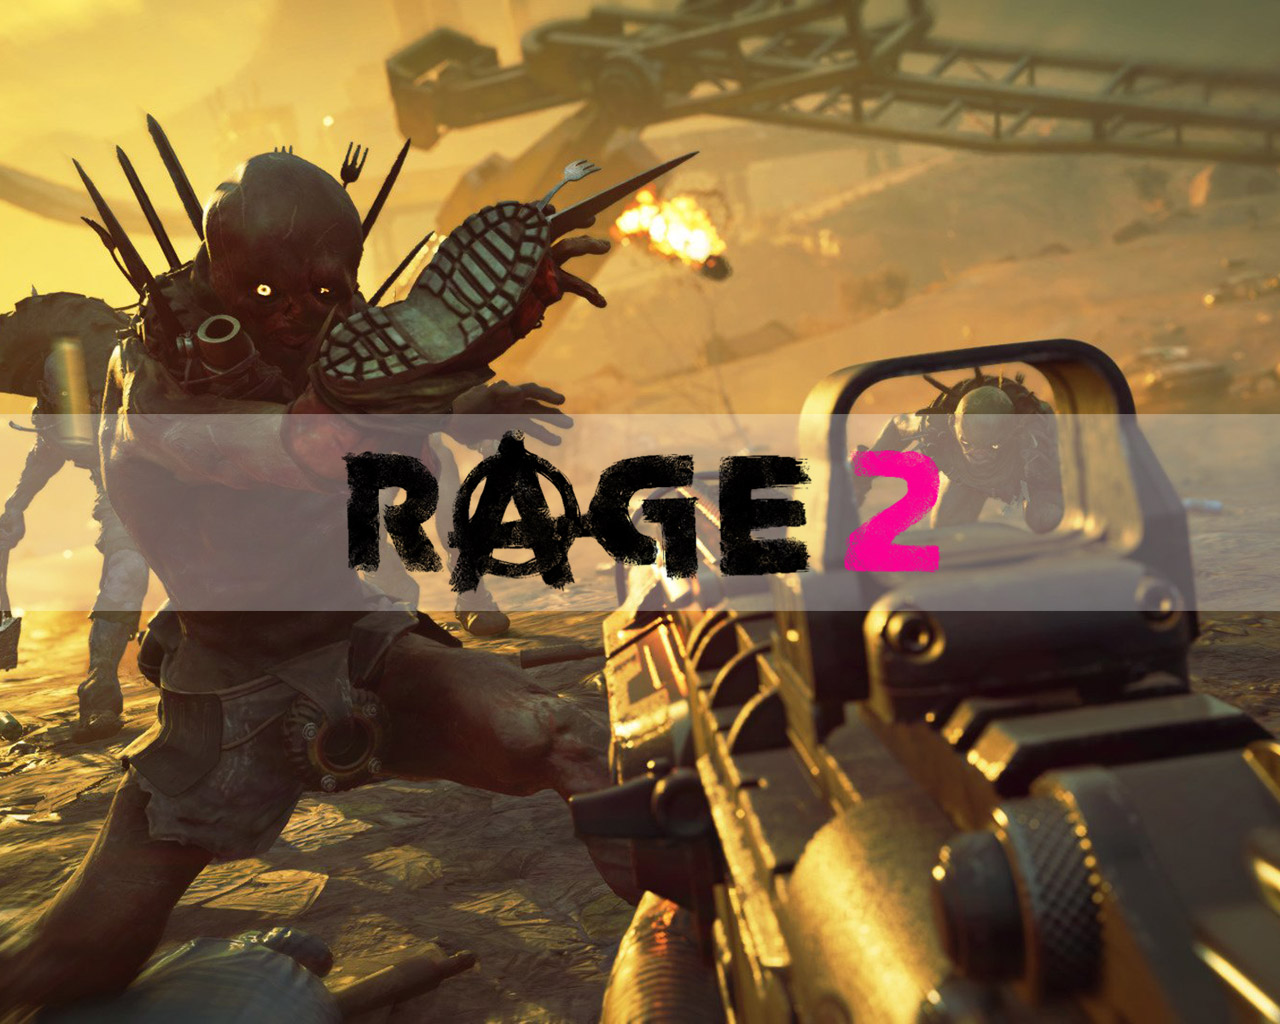 Rage 2 Wallpaper in 1280x1024